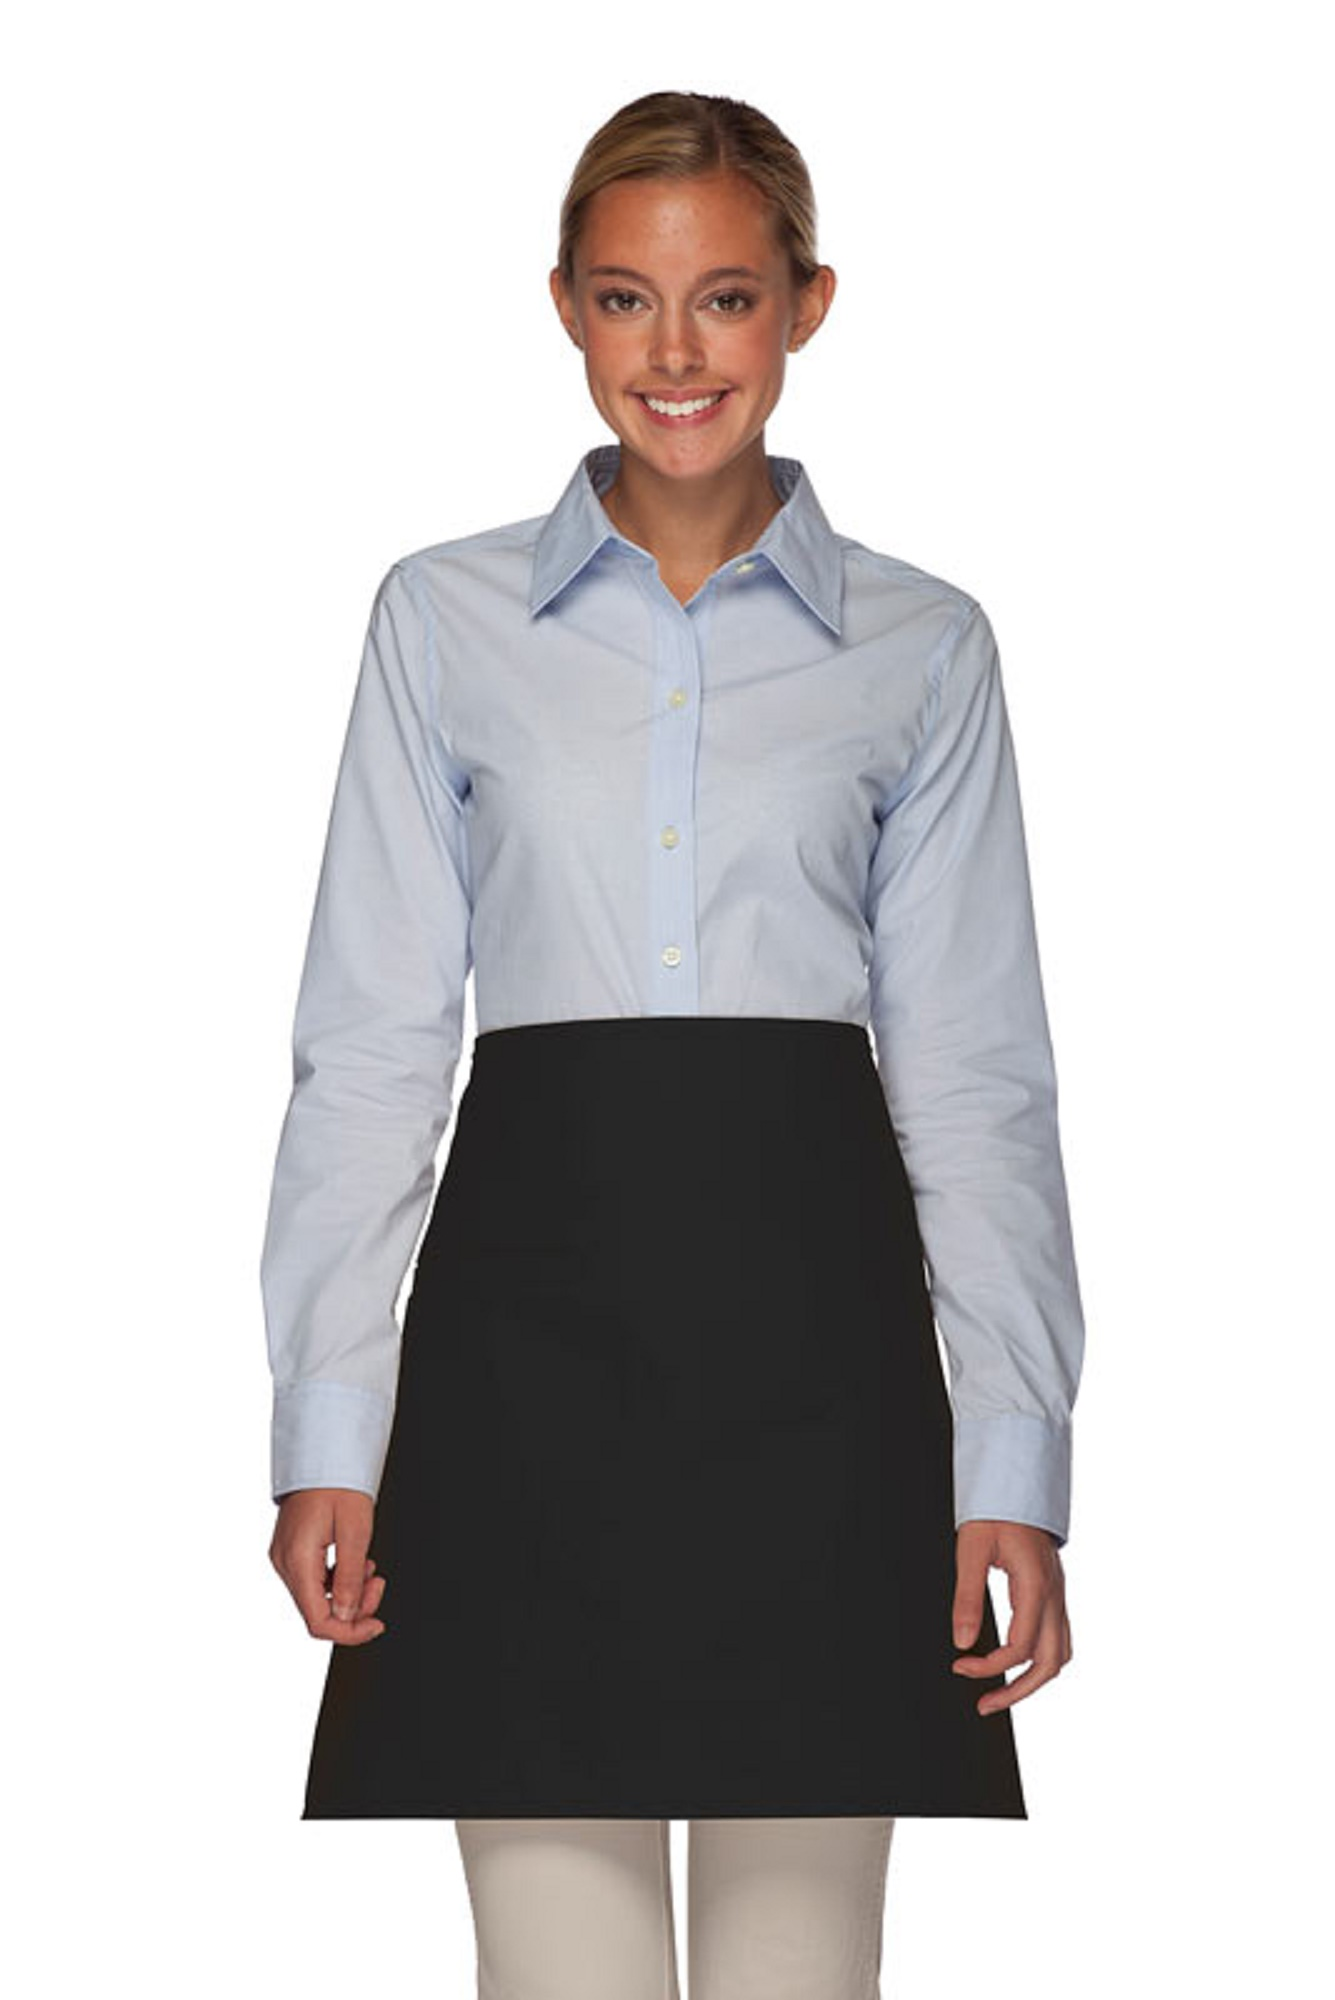 Style 110I Professional Half Bistro Apron with Inset Pocket - Black